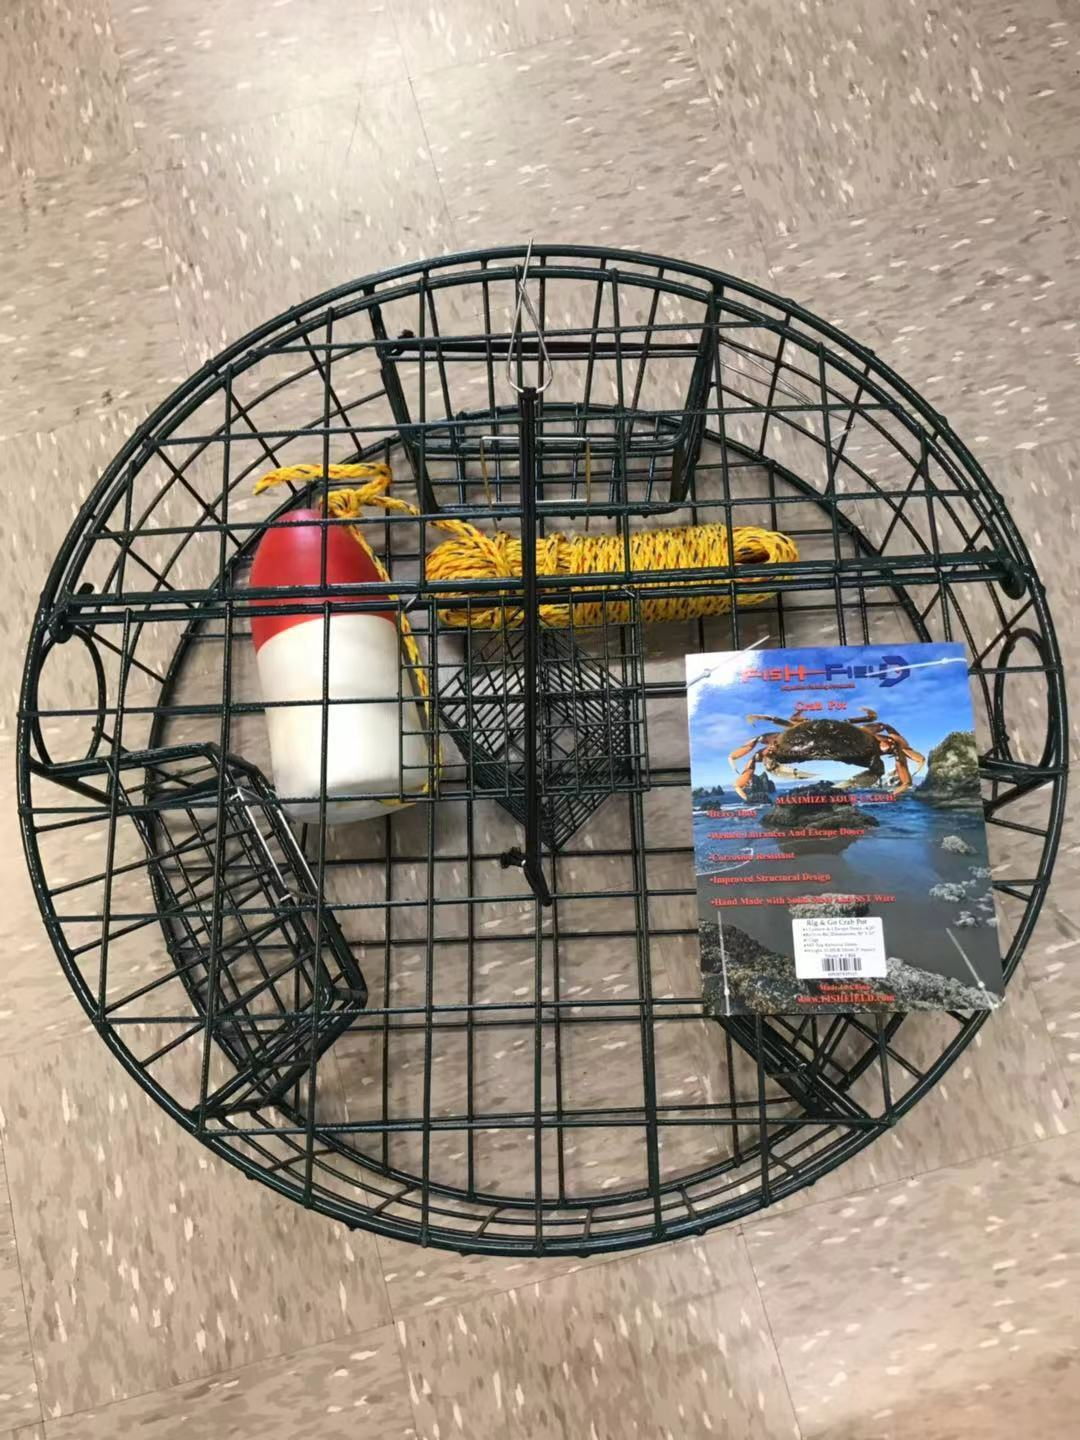 FISH-FIELD Rig and Go Crab Pot Combo Crabbing Fish-Field